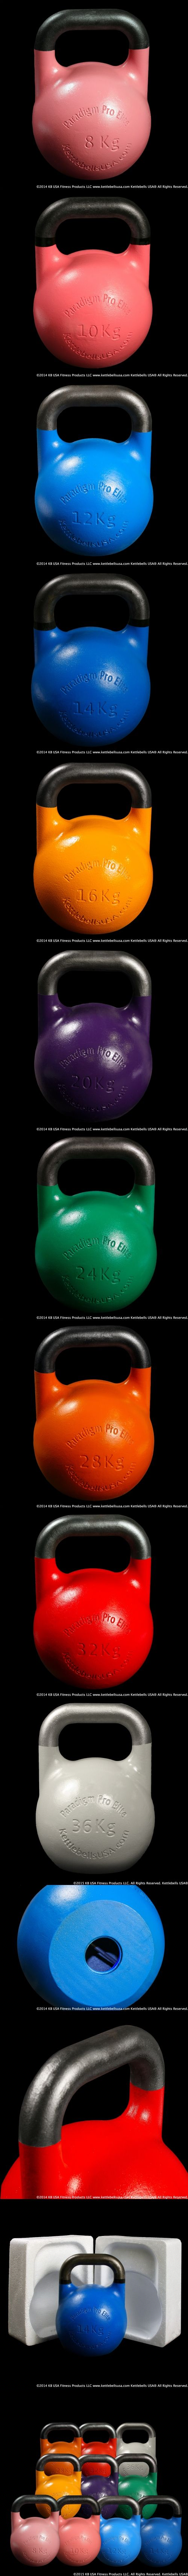 Paradigm Pro® Elite Precision Steel Competition Kettlebells Manufactured Exclusively by Kettlebells USA®.   www.kettlebellsusa.com   www.ikff.net   #kettlebell #kettlebells #girya #giryasport #kettlebellsport #ikff #quality